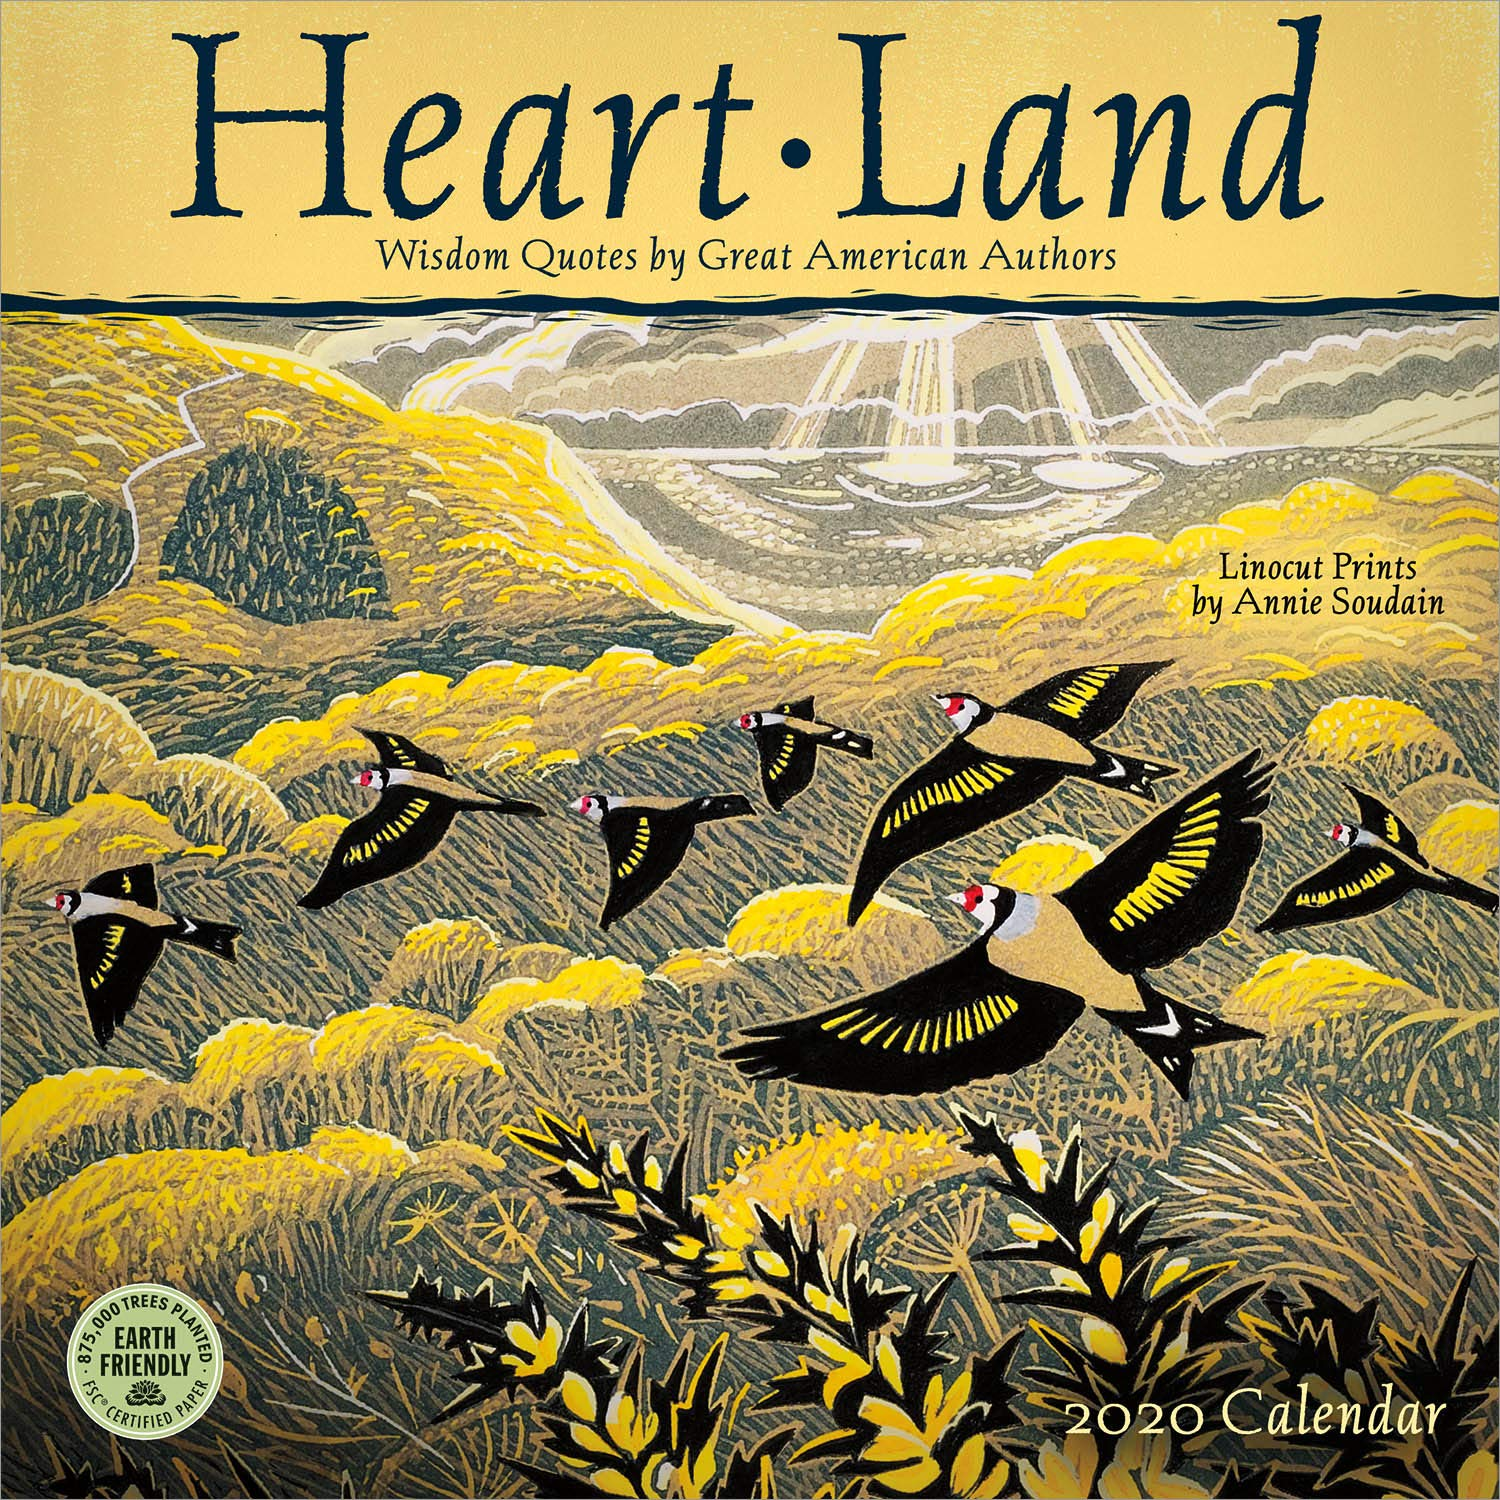 Heart Land 2020 Wall Calendar: Wisdom Quotes by Great American Authors by Amber Lotus Publishing